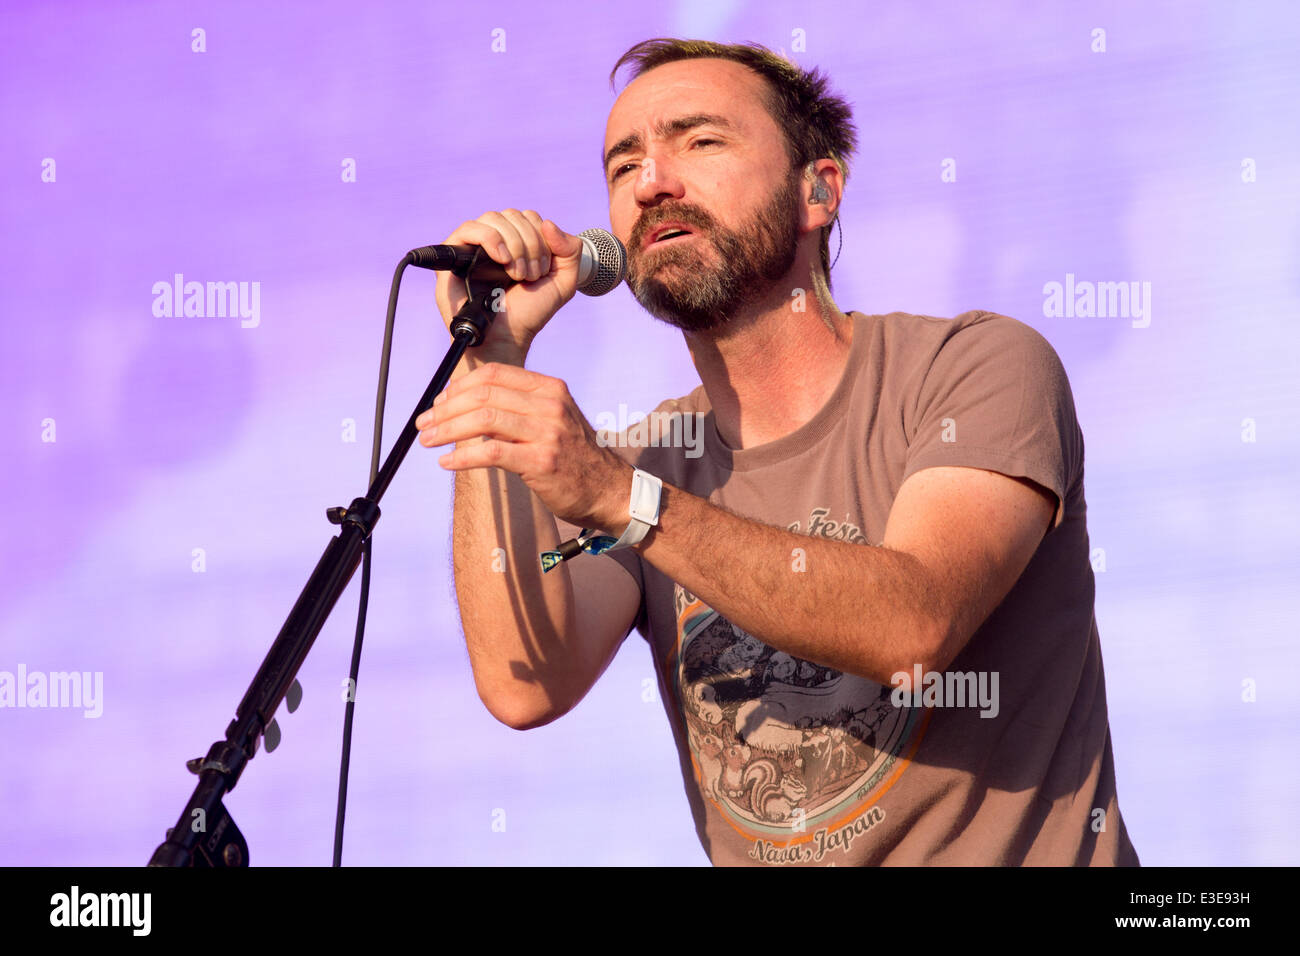 Dover, Delaware, USA. 22nd June, 2014. Musician JAMES MERCER of the band Broken Bells performs live at the 2014 - Stock Image